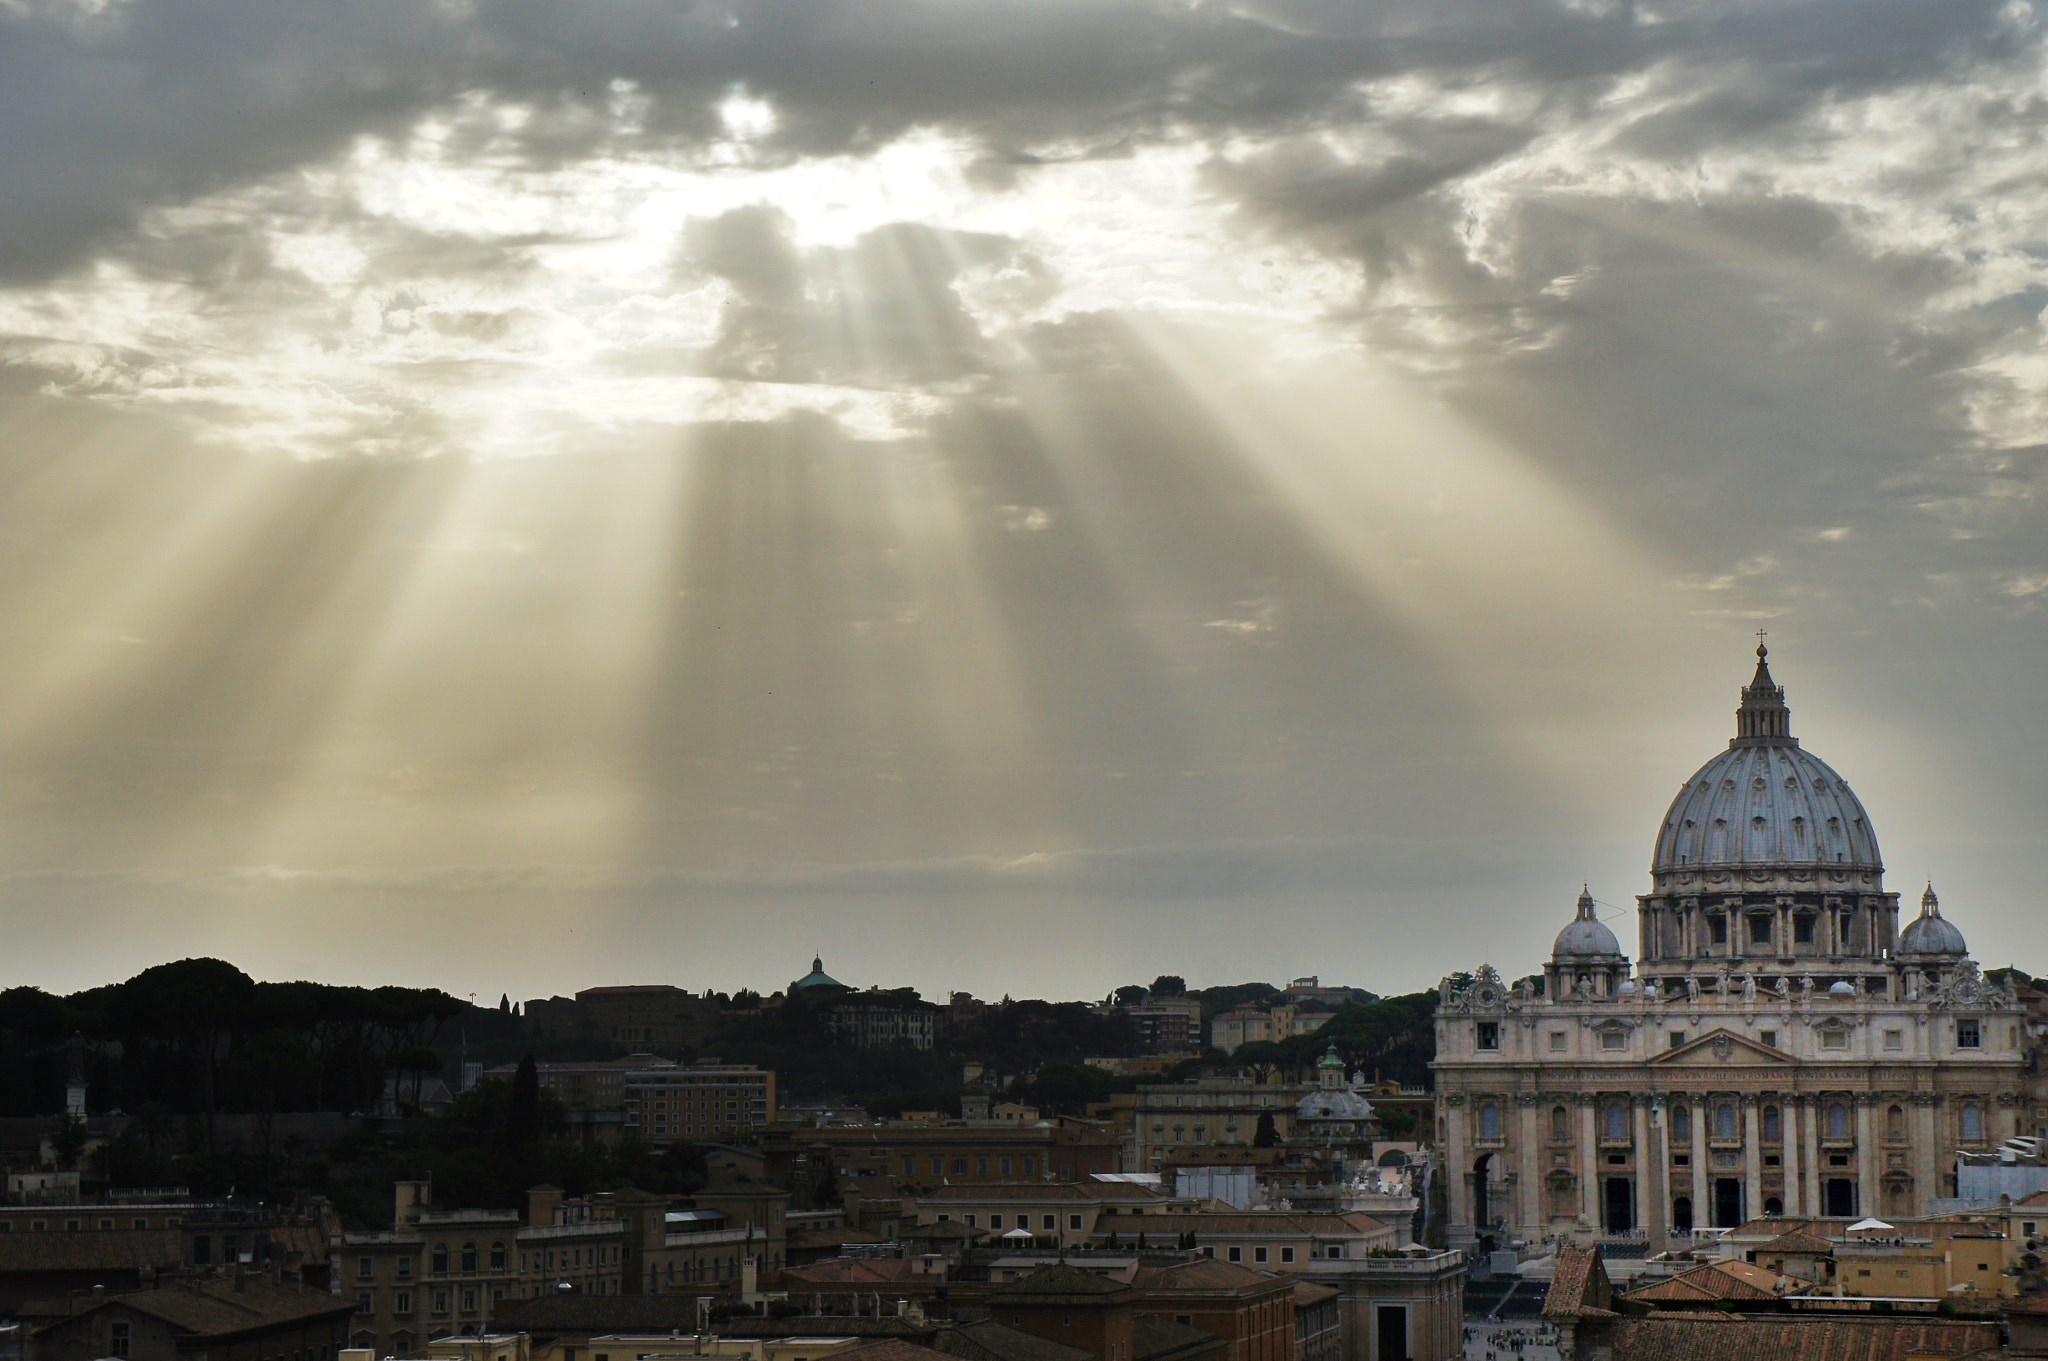 Photograph St. Peters Church with sun rays @Vatican by Rafael Guerrero on 500px